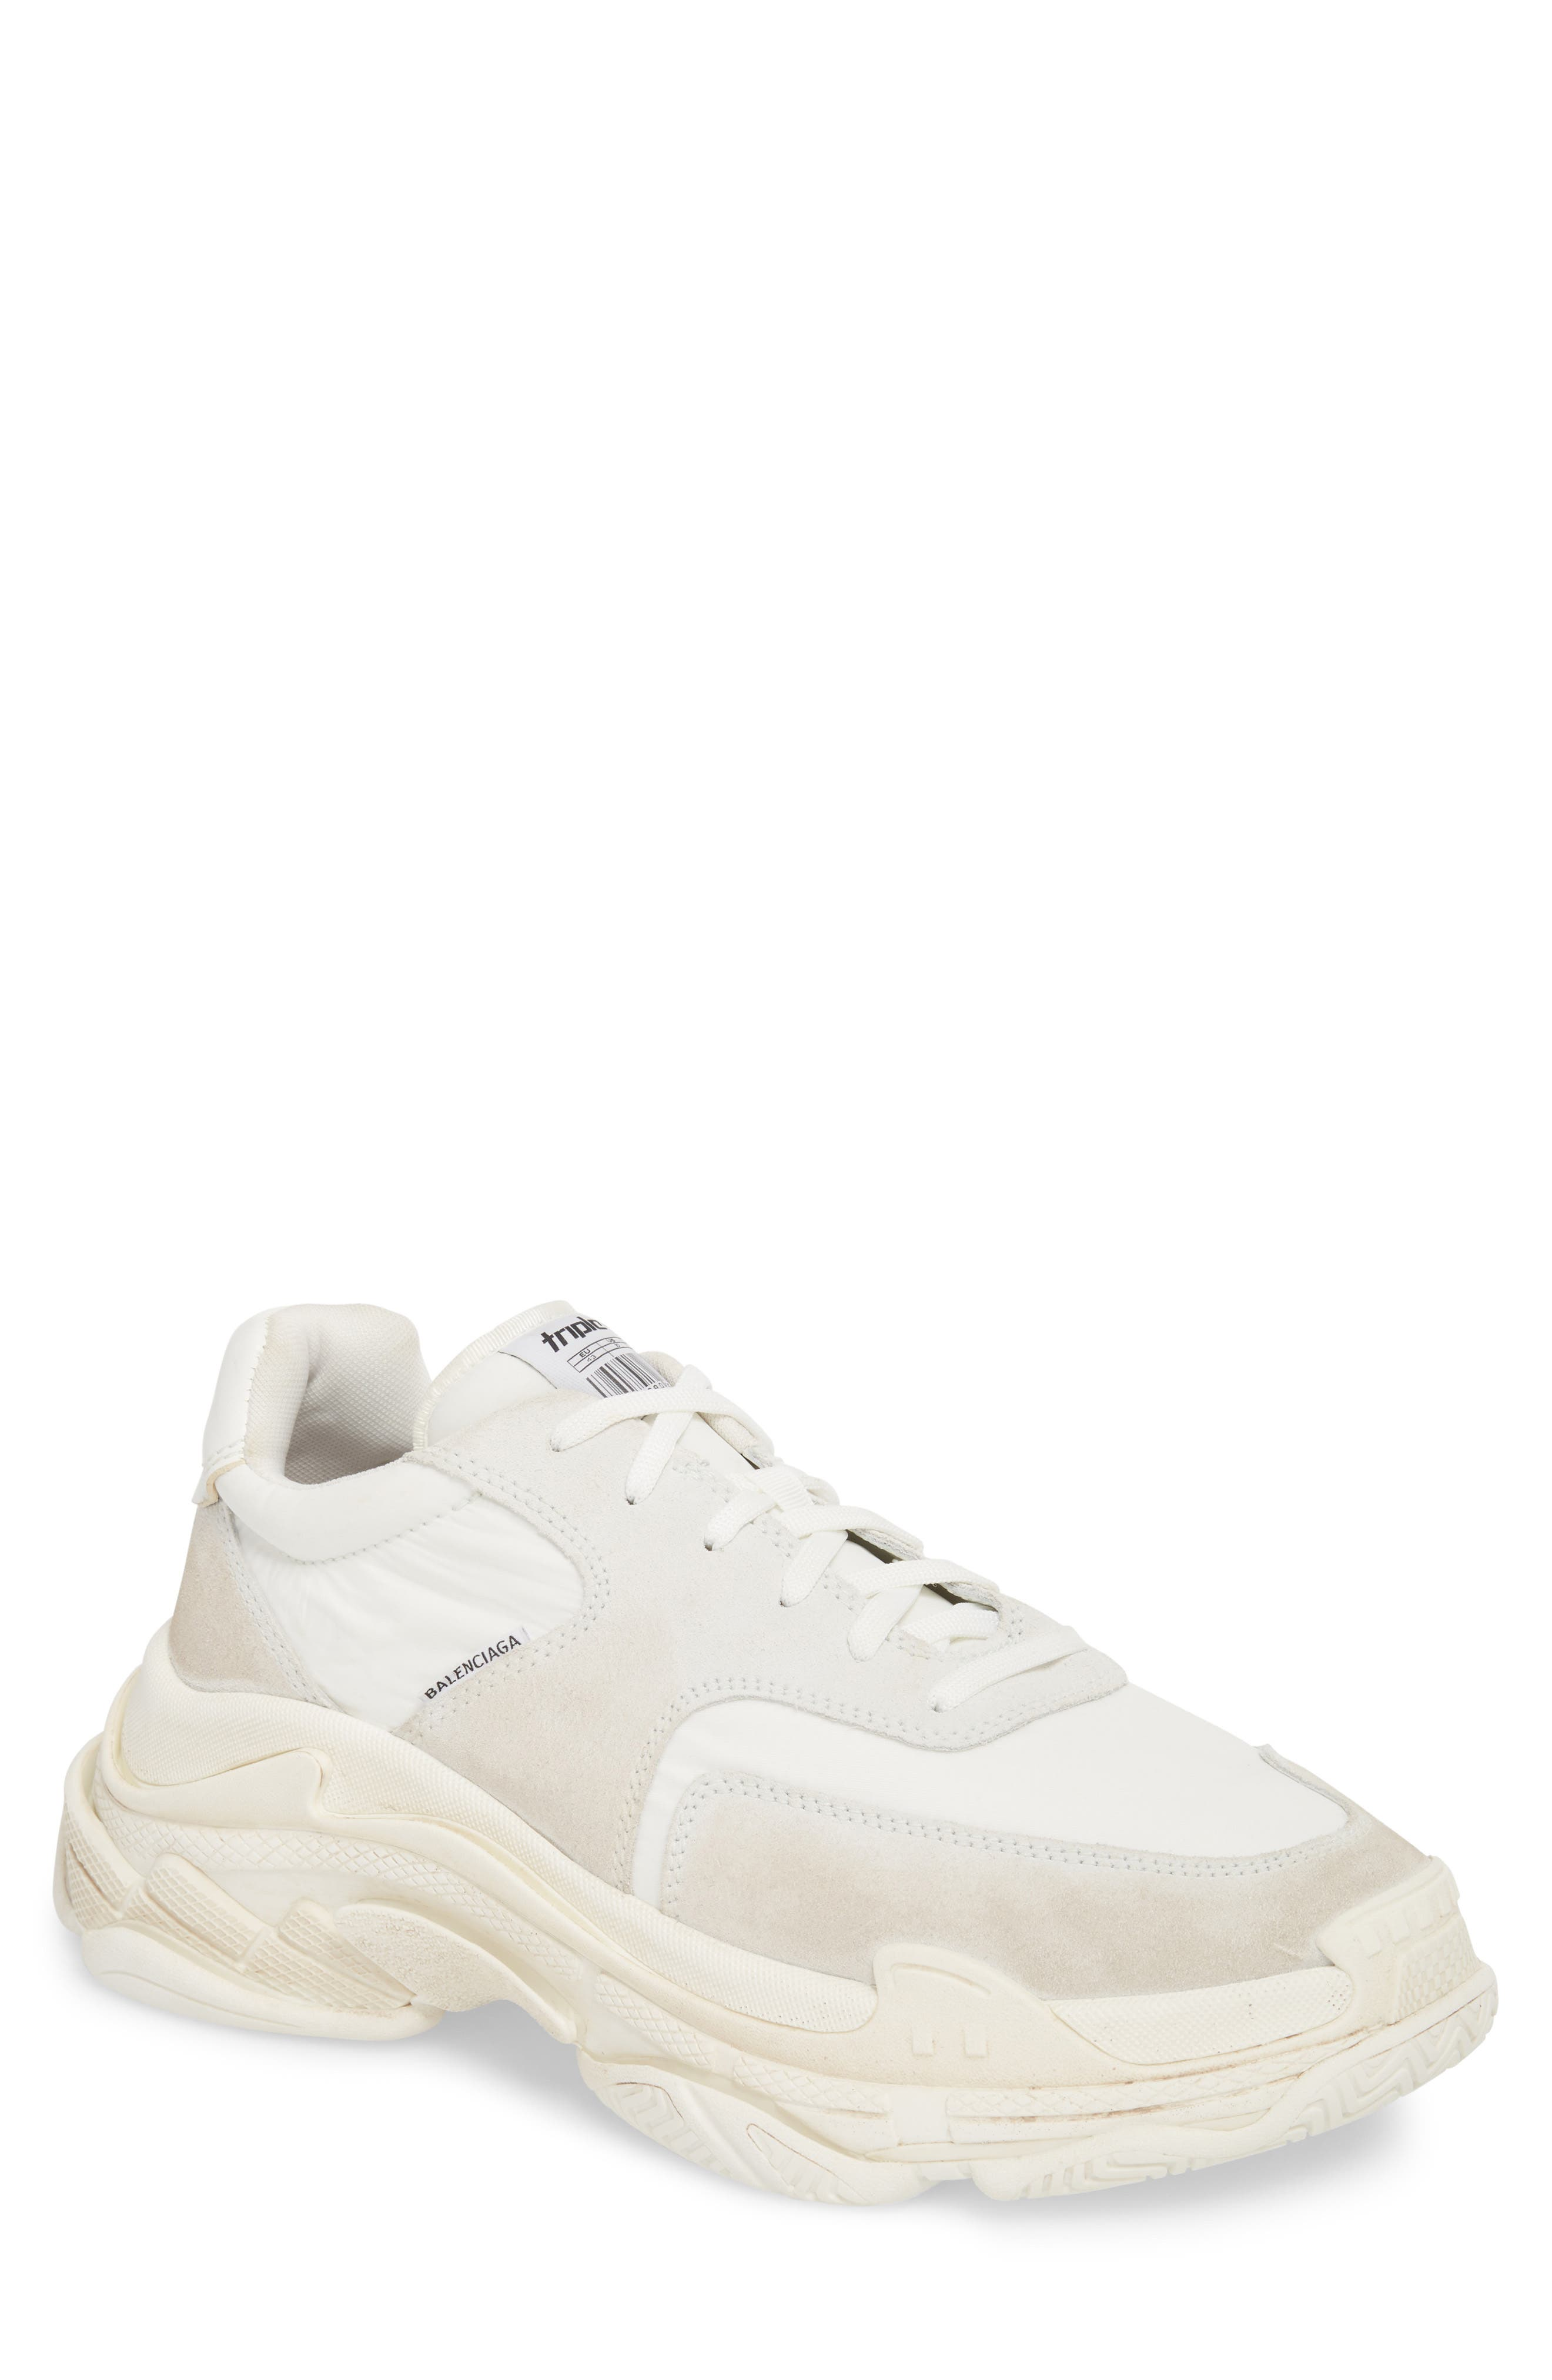 Balenciaga Triple S Retro Sneaker (Men)